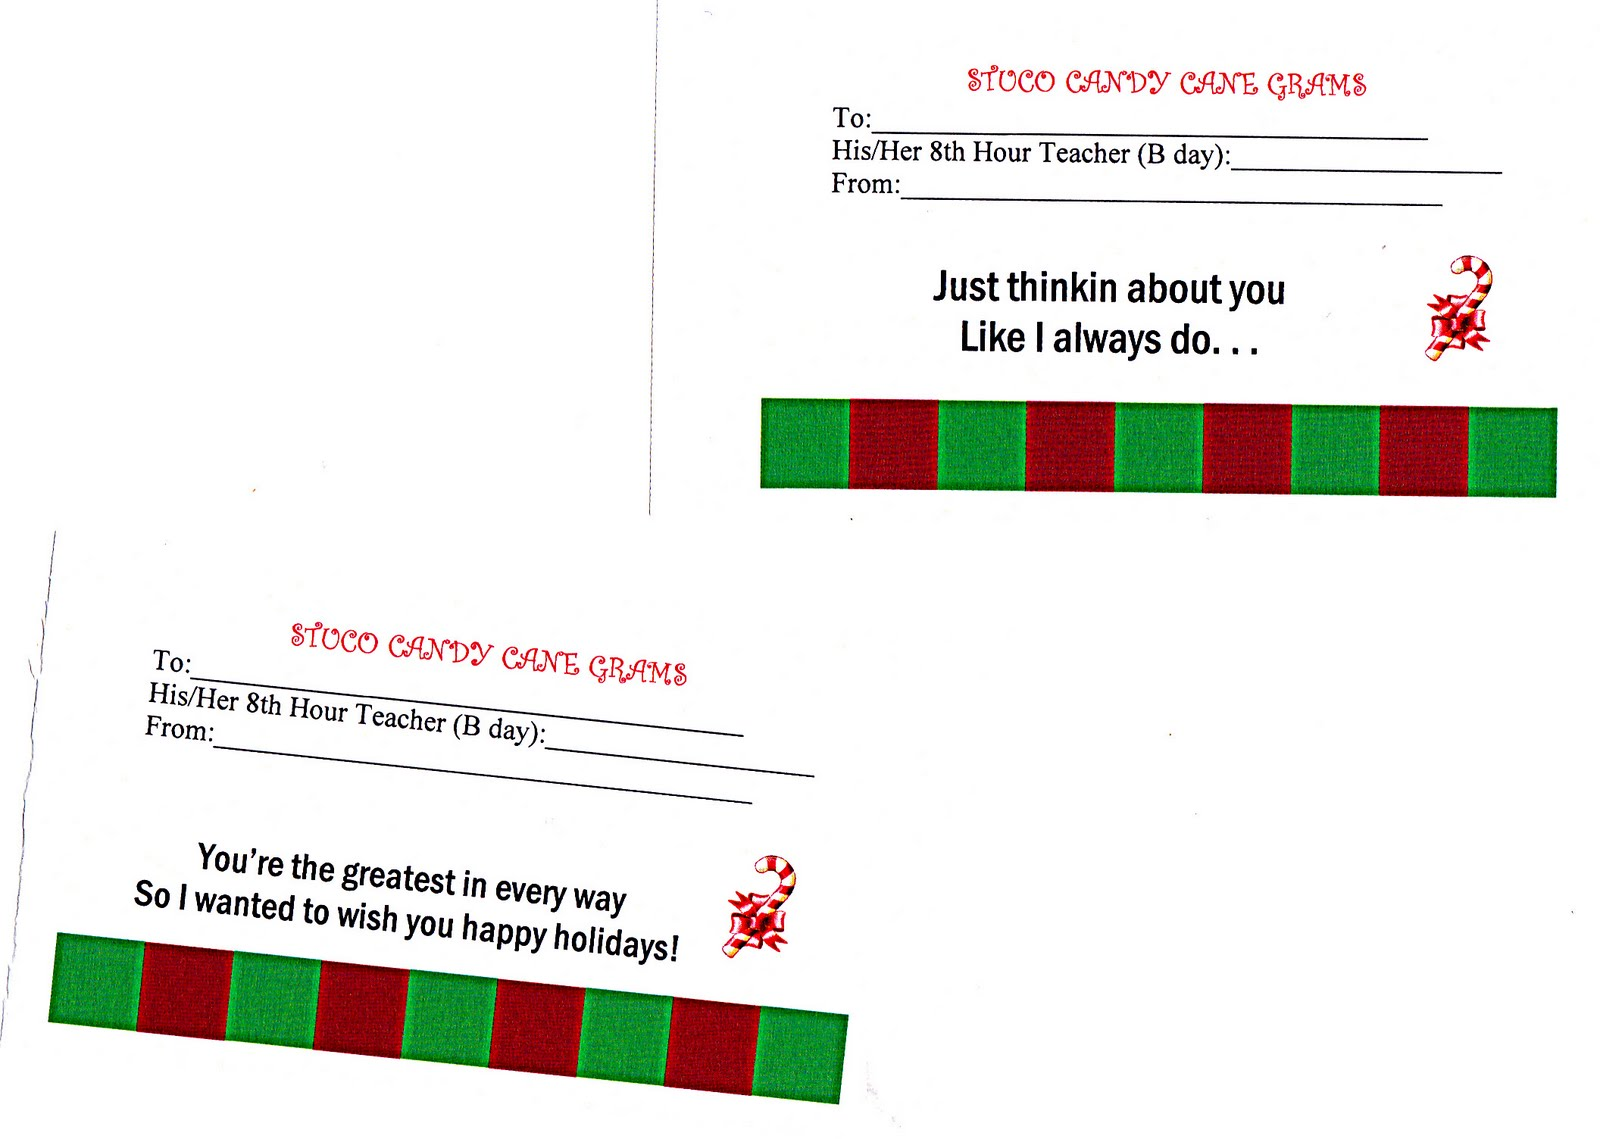 8 Images of Printable Candy Cane Gram Templates